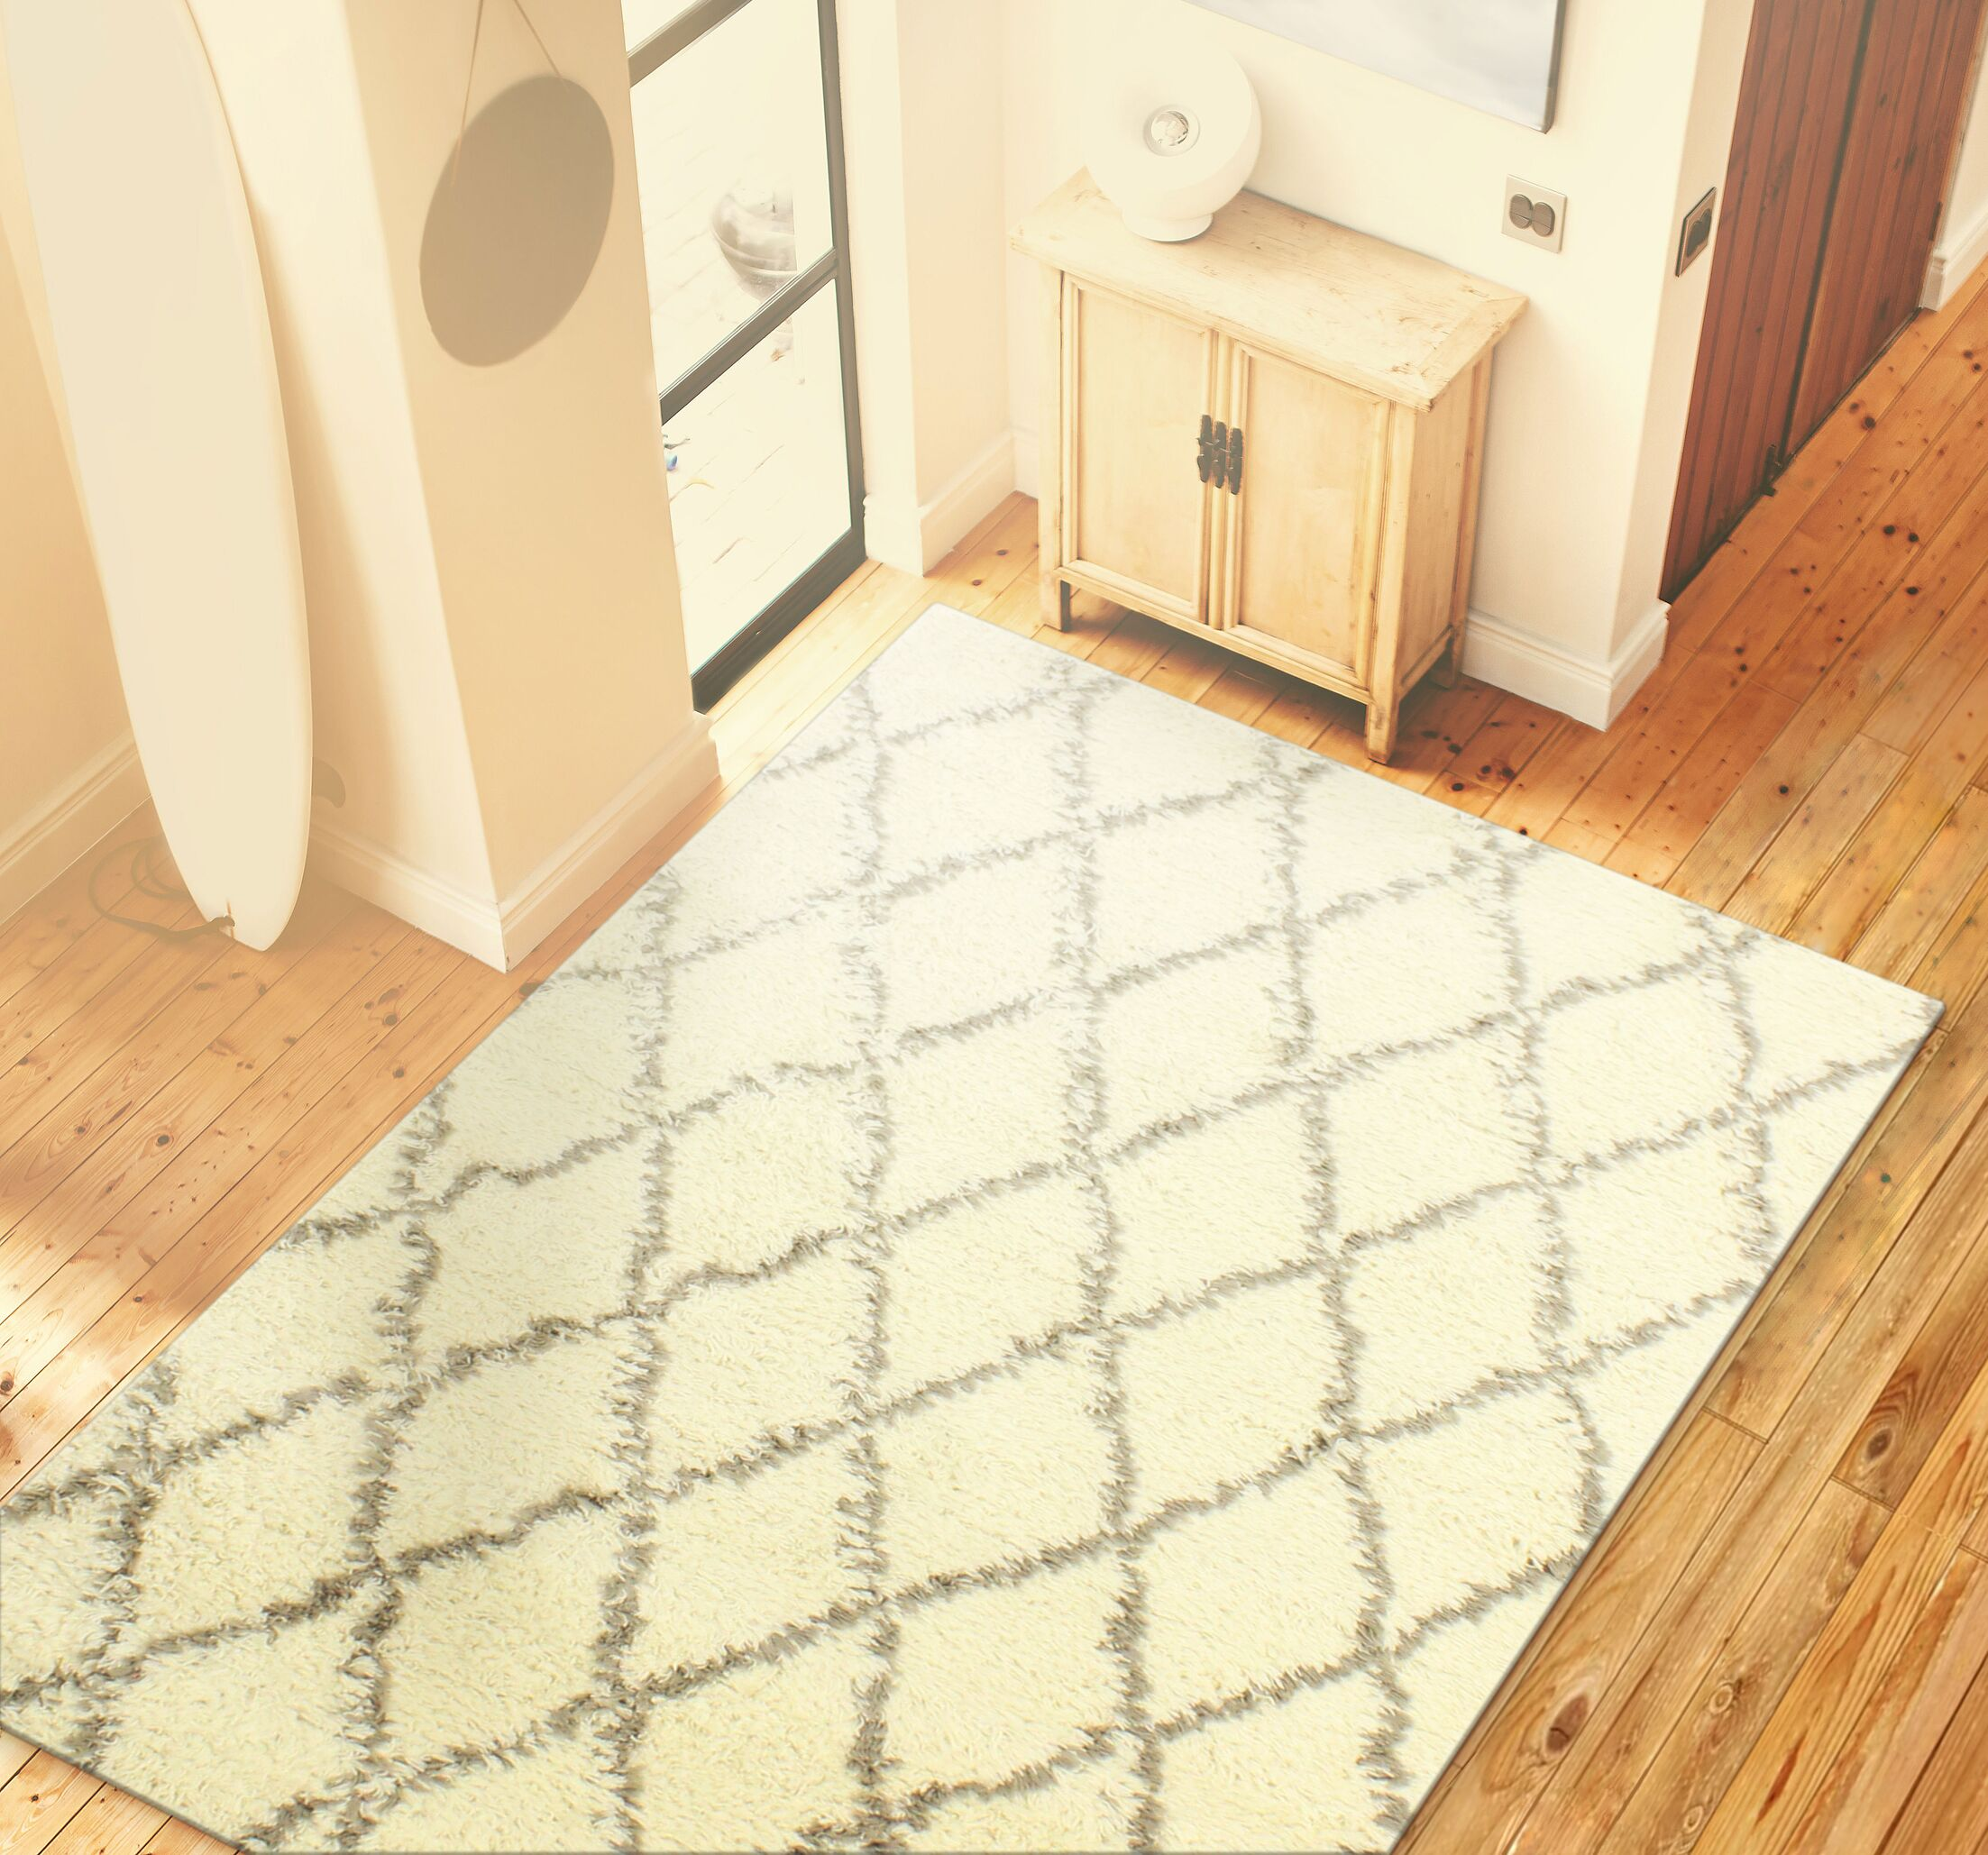 Lavedan Wool Hand-Knotted Ivory/Grey Area Rug Rug Size: 5' x 7'6